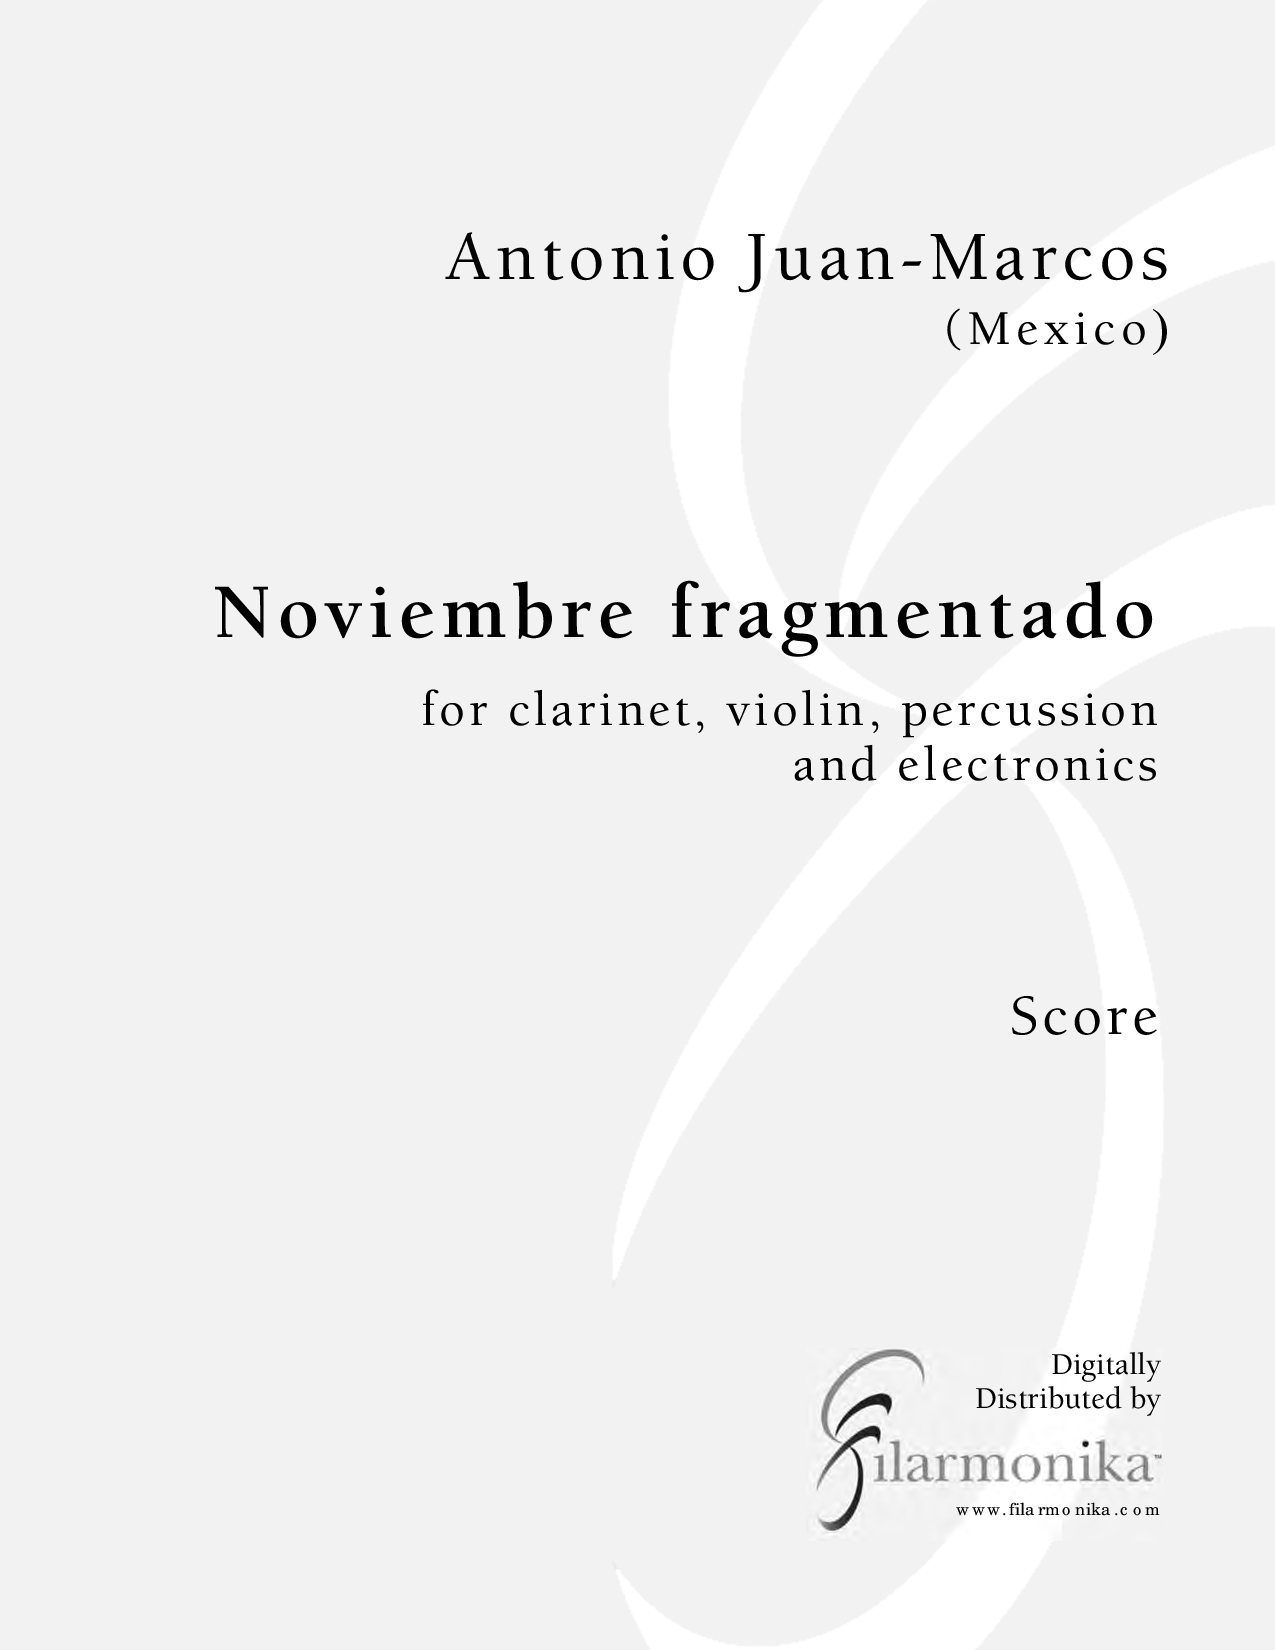 Noviembre fragmentado, for clarinet, violin, percussion, and electronics